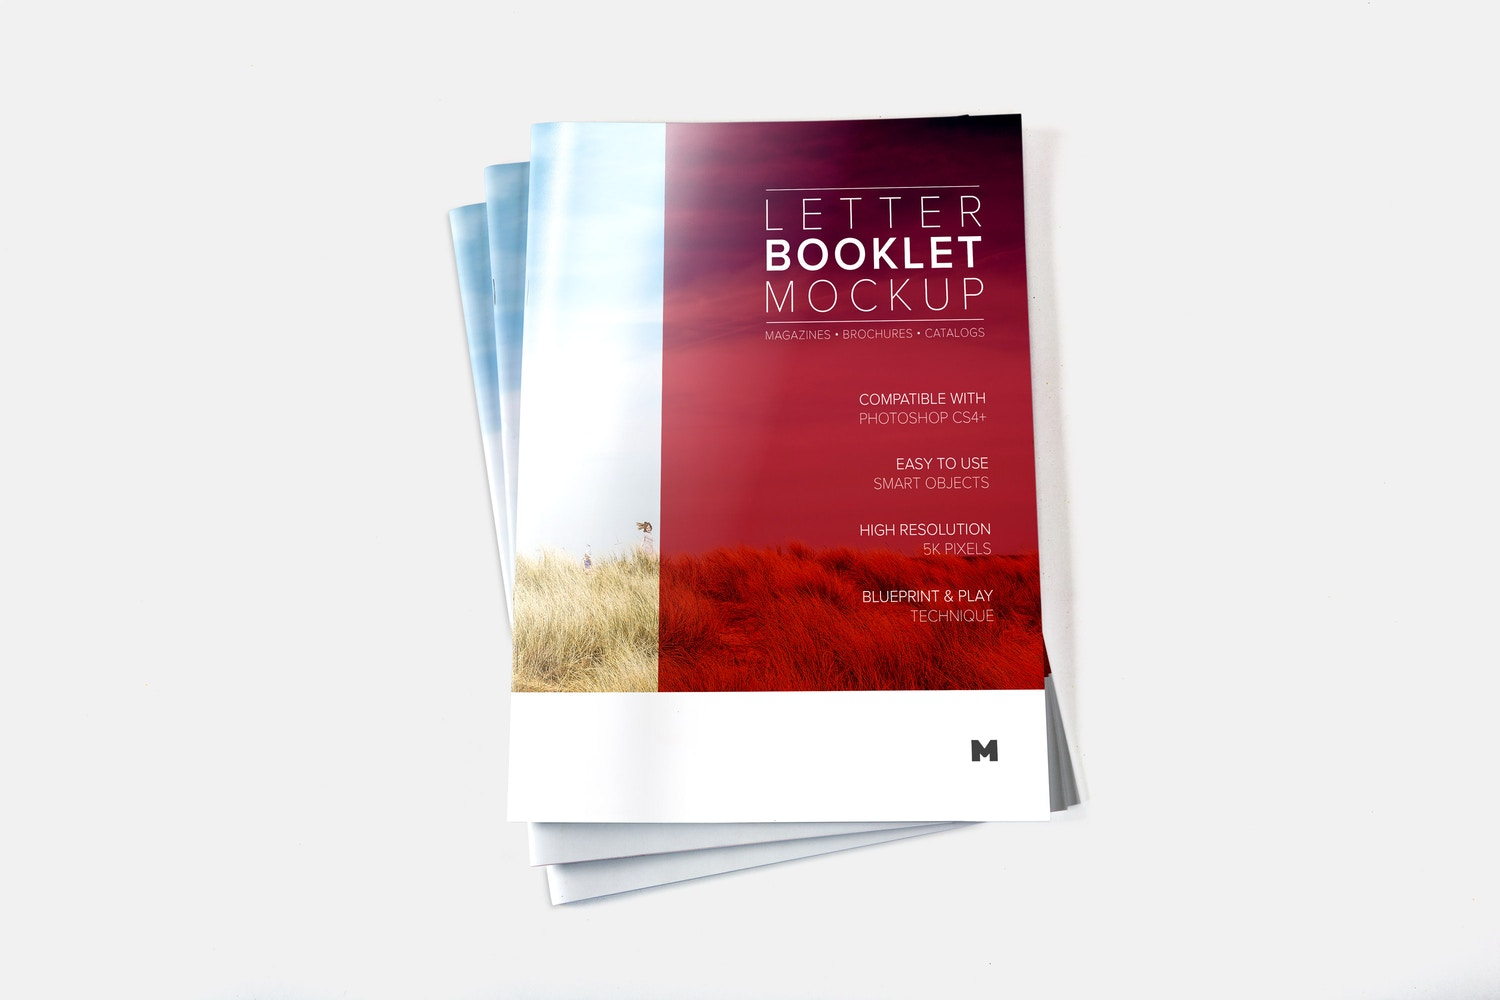 Letter Booklet Stack Cover Mockup 02 by Original Mockups on Original Mockups